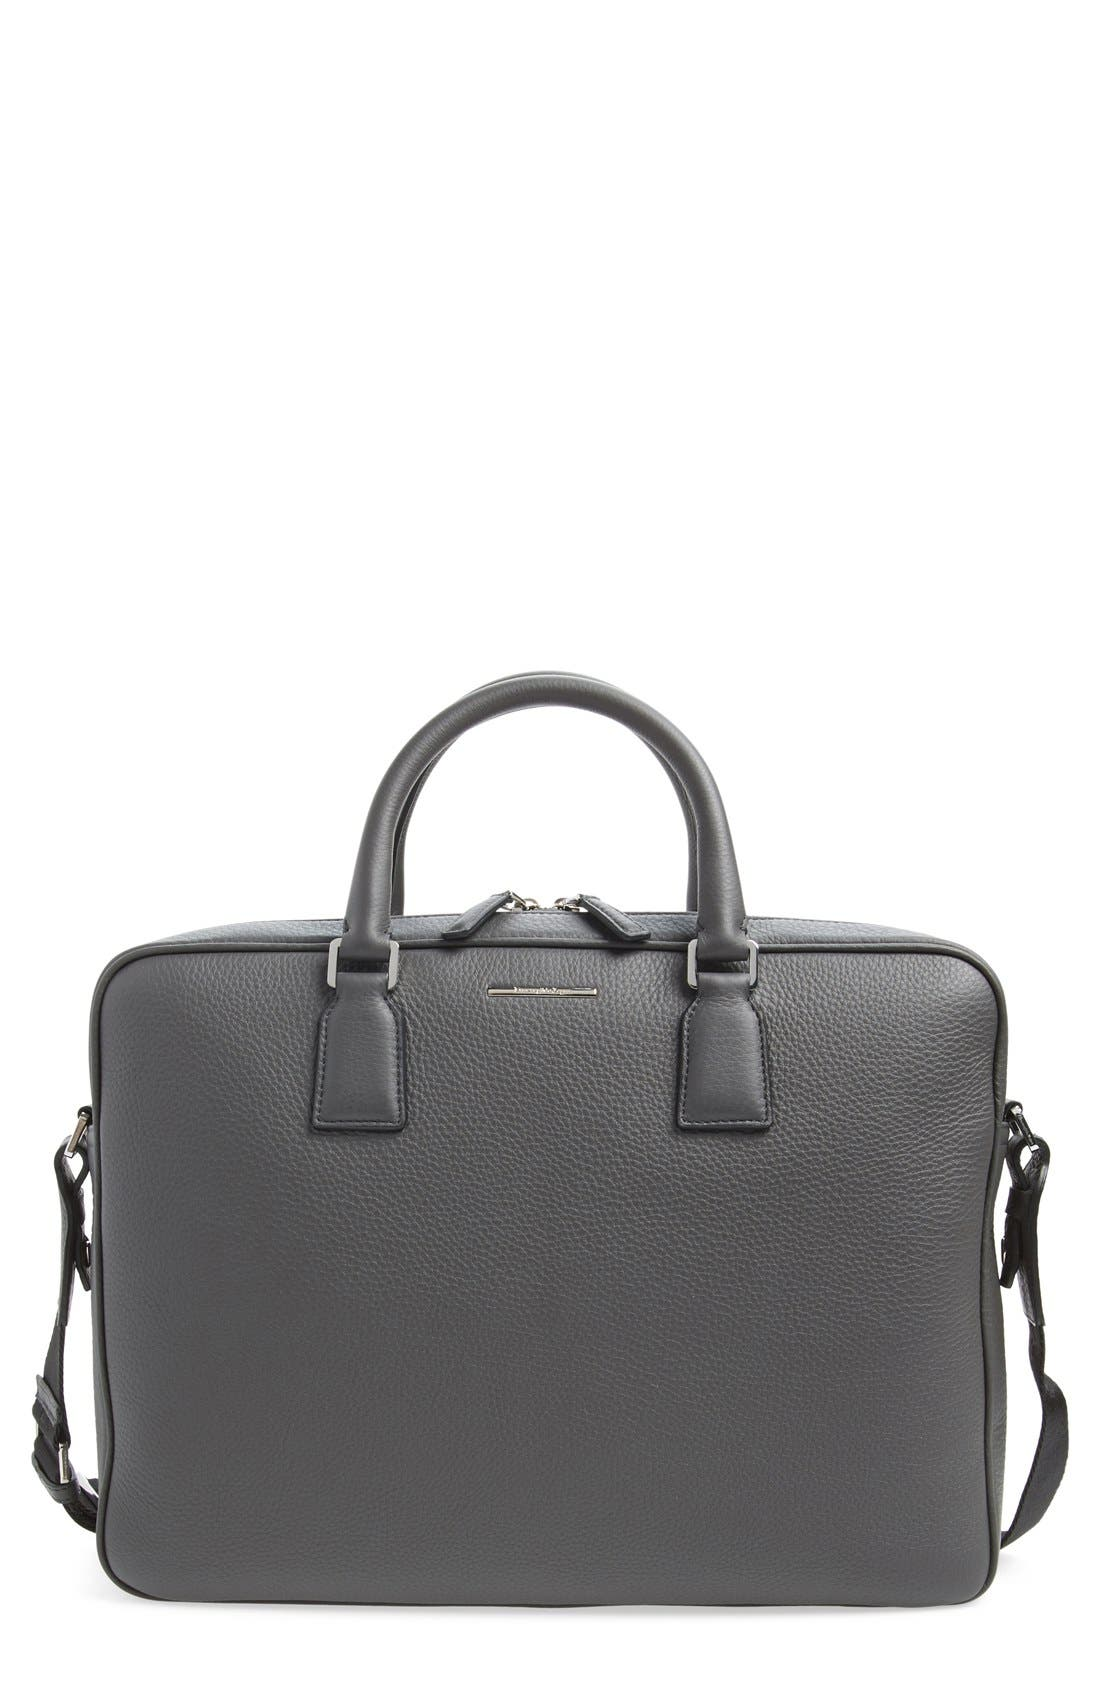 'Hamptons' Zip Leather Business Bag, Main, color, 032